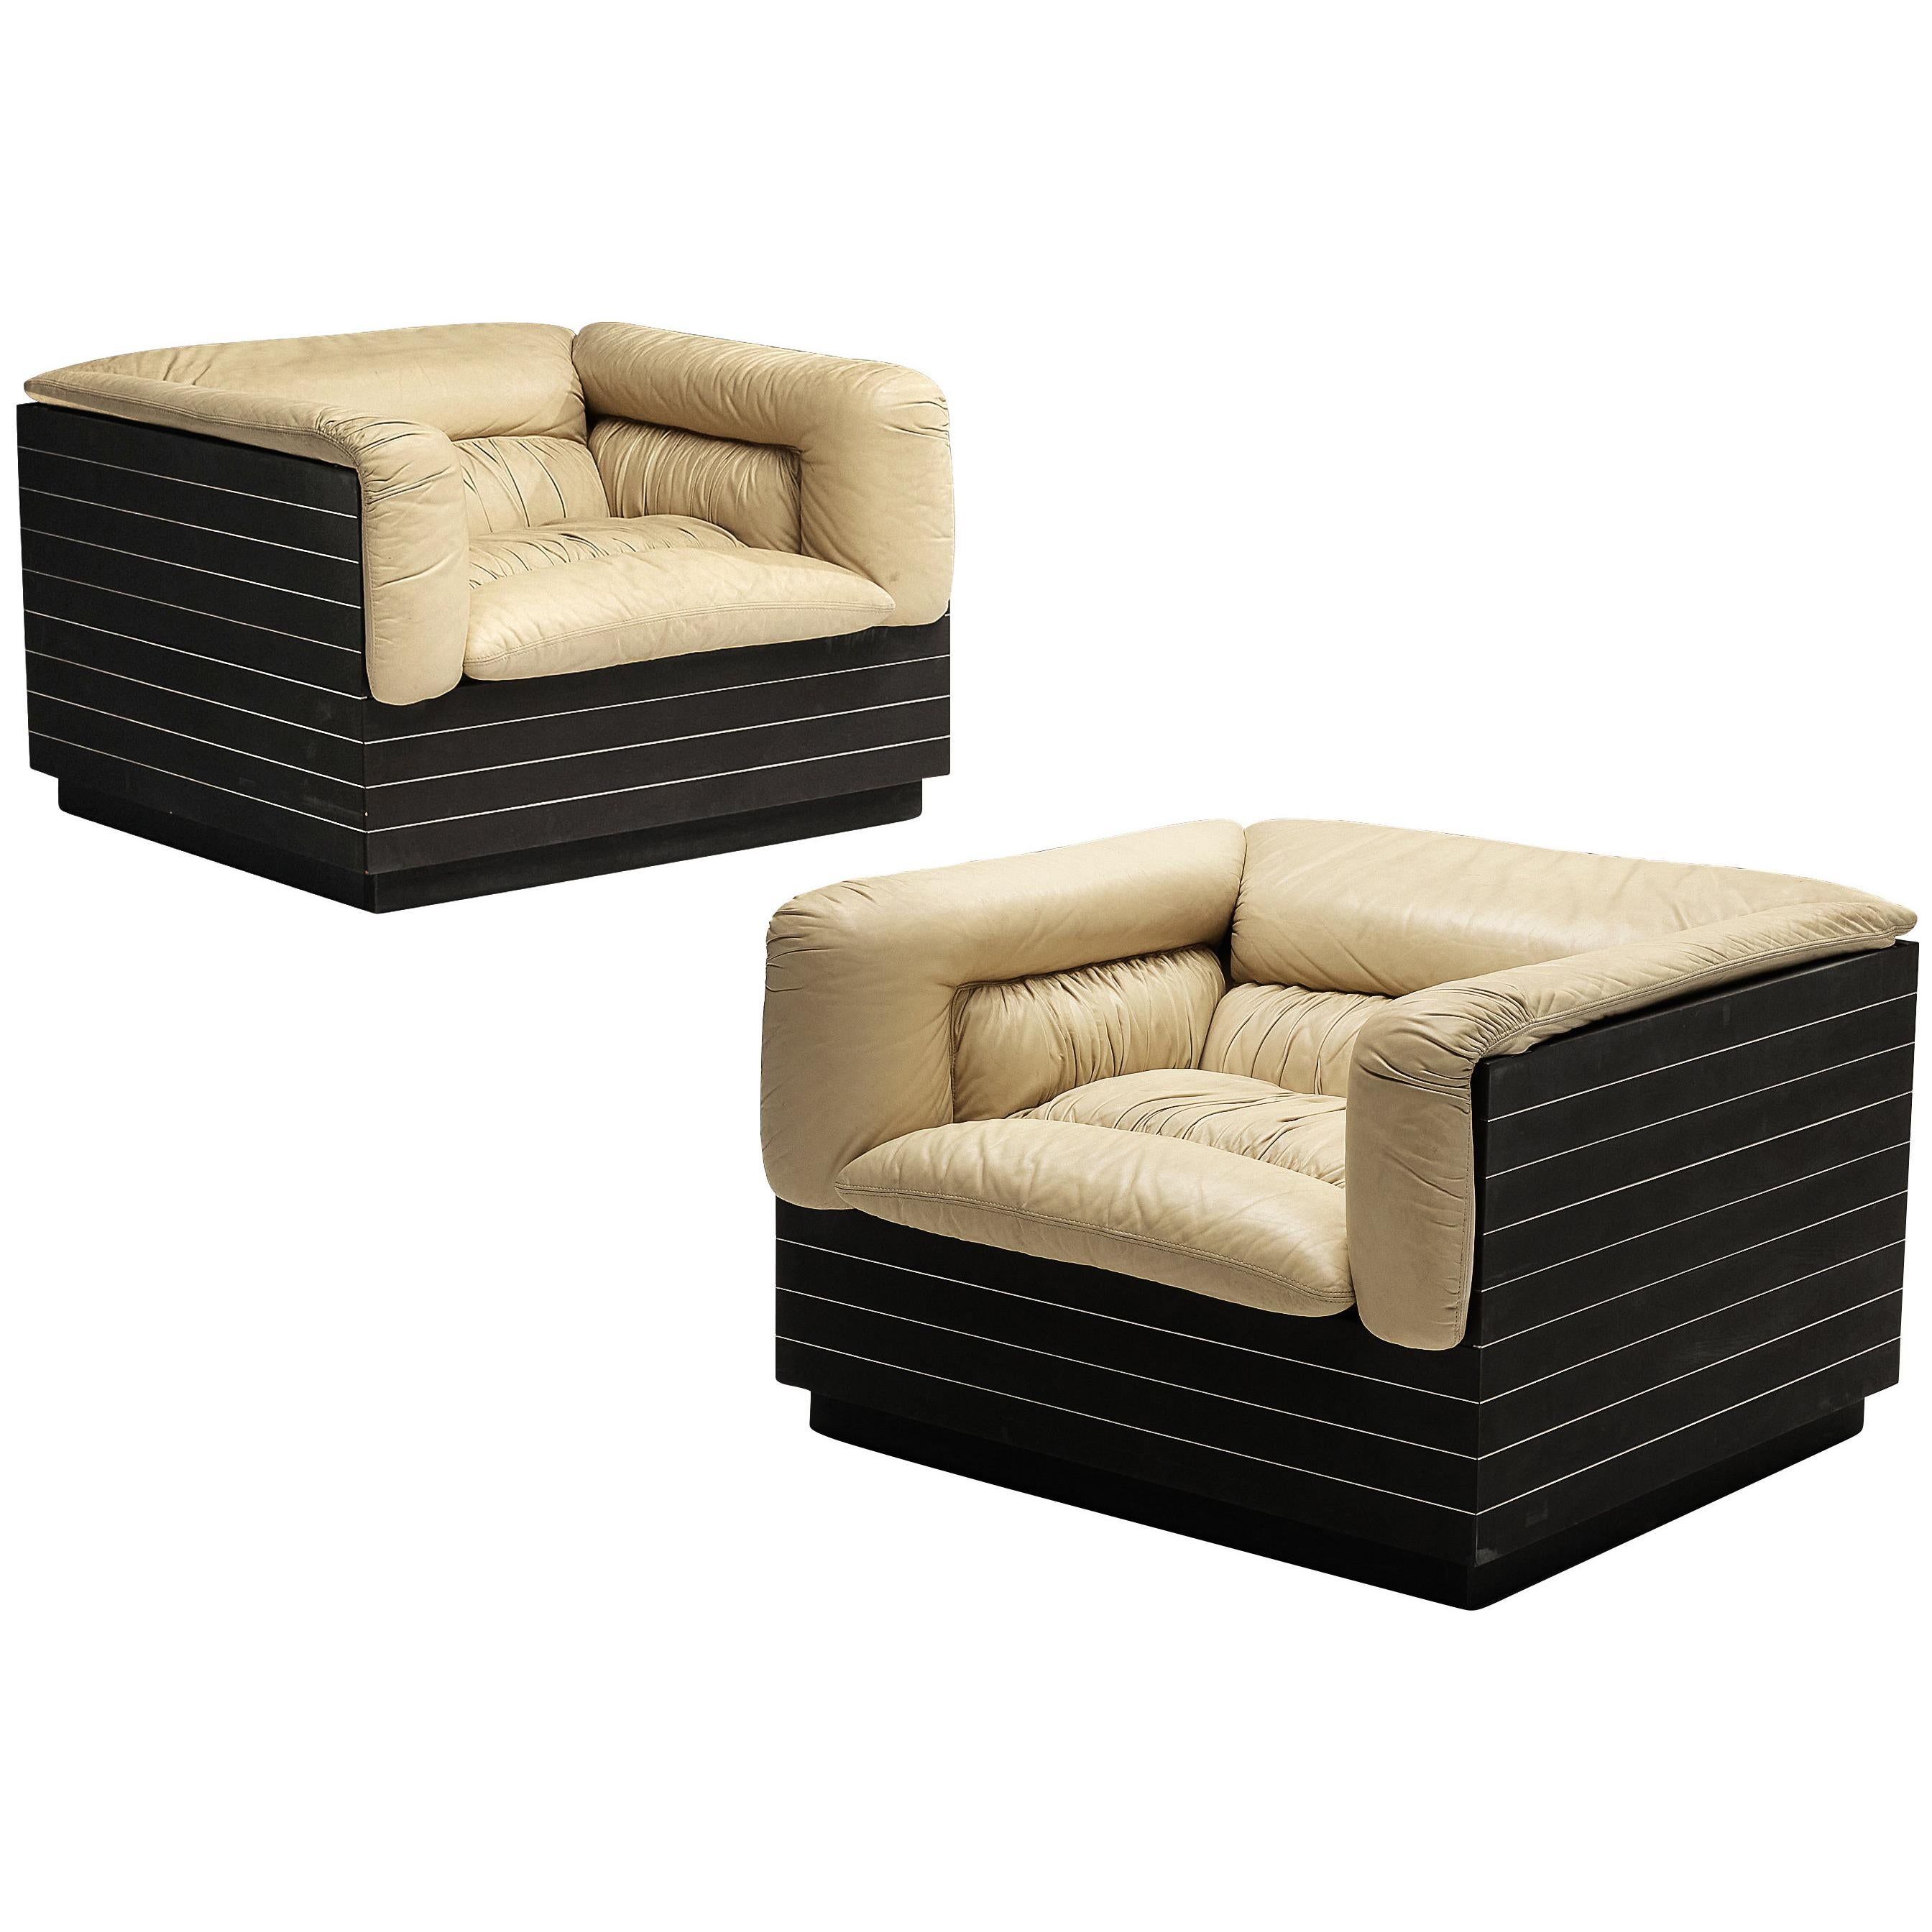 Giovanni Offredi for Saporiti Pair of Lounge Chairs in Leather